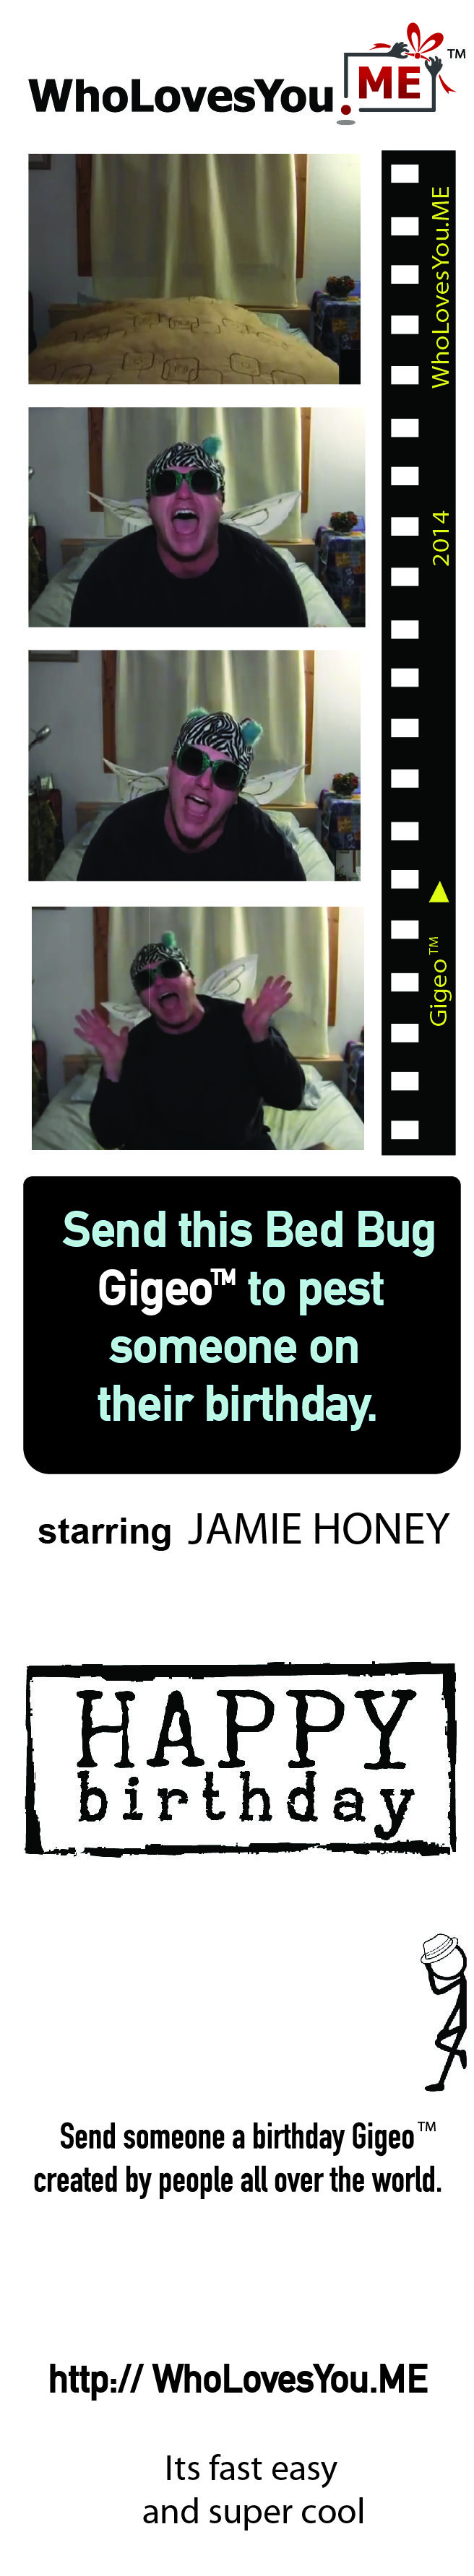 $15 | http://WhoLovesYou.ME Bug someone on their birthday with a completely zany Gigeo™ message. Dressed as the largest bed bug you will ever see, Jamie Honey erupts from under the bed covers to spew forth an exuberant personalized Happy Birthday greeting, chattering away about all possibilities for this special day!  http://WhoLovesYou.ME | #gigeo